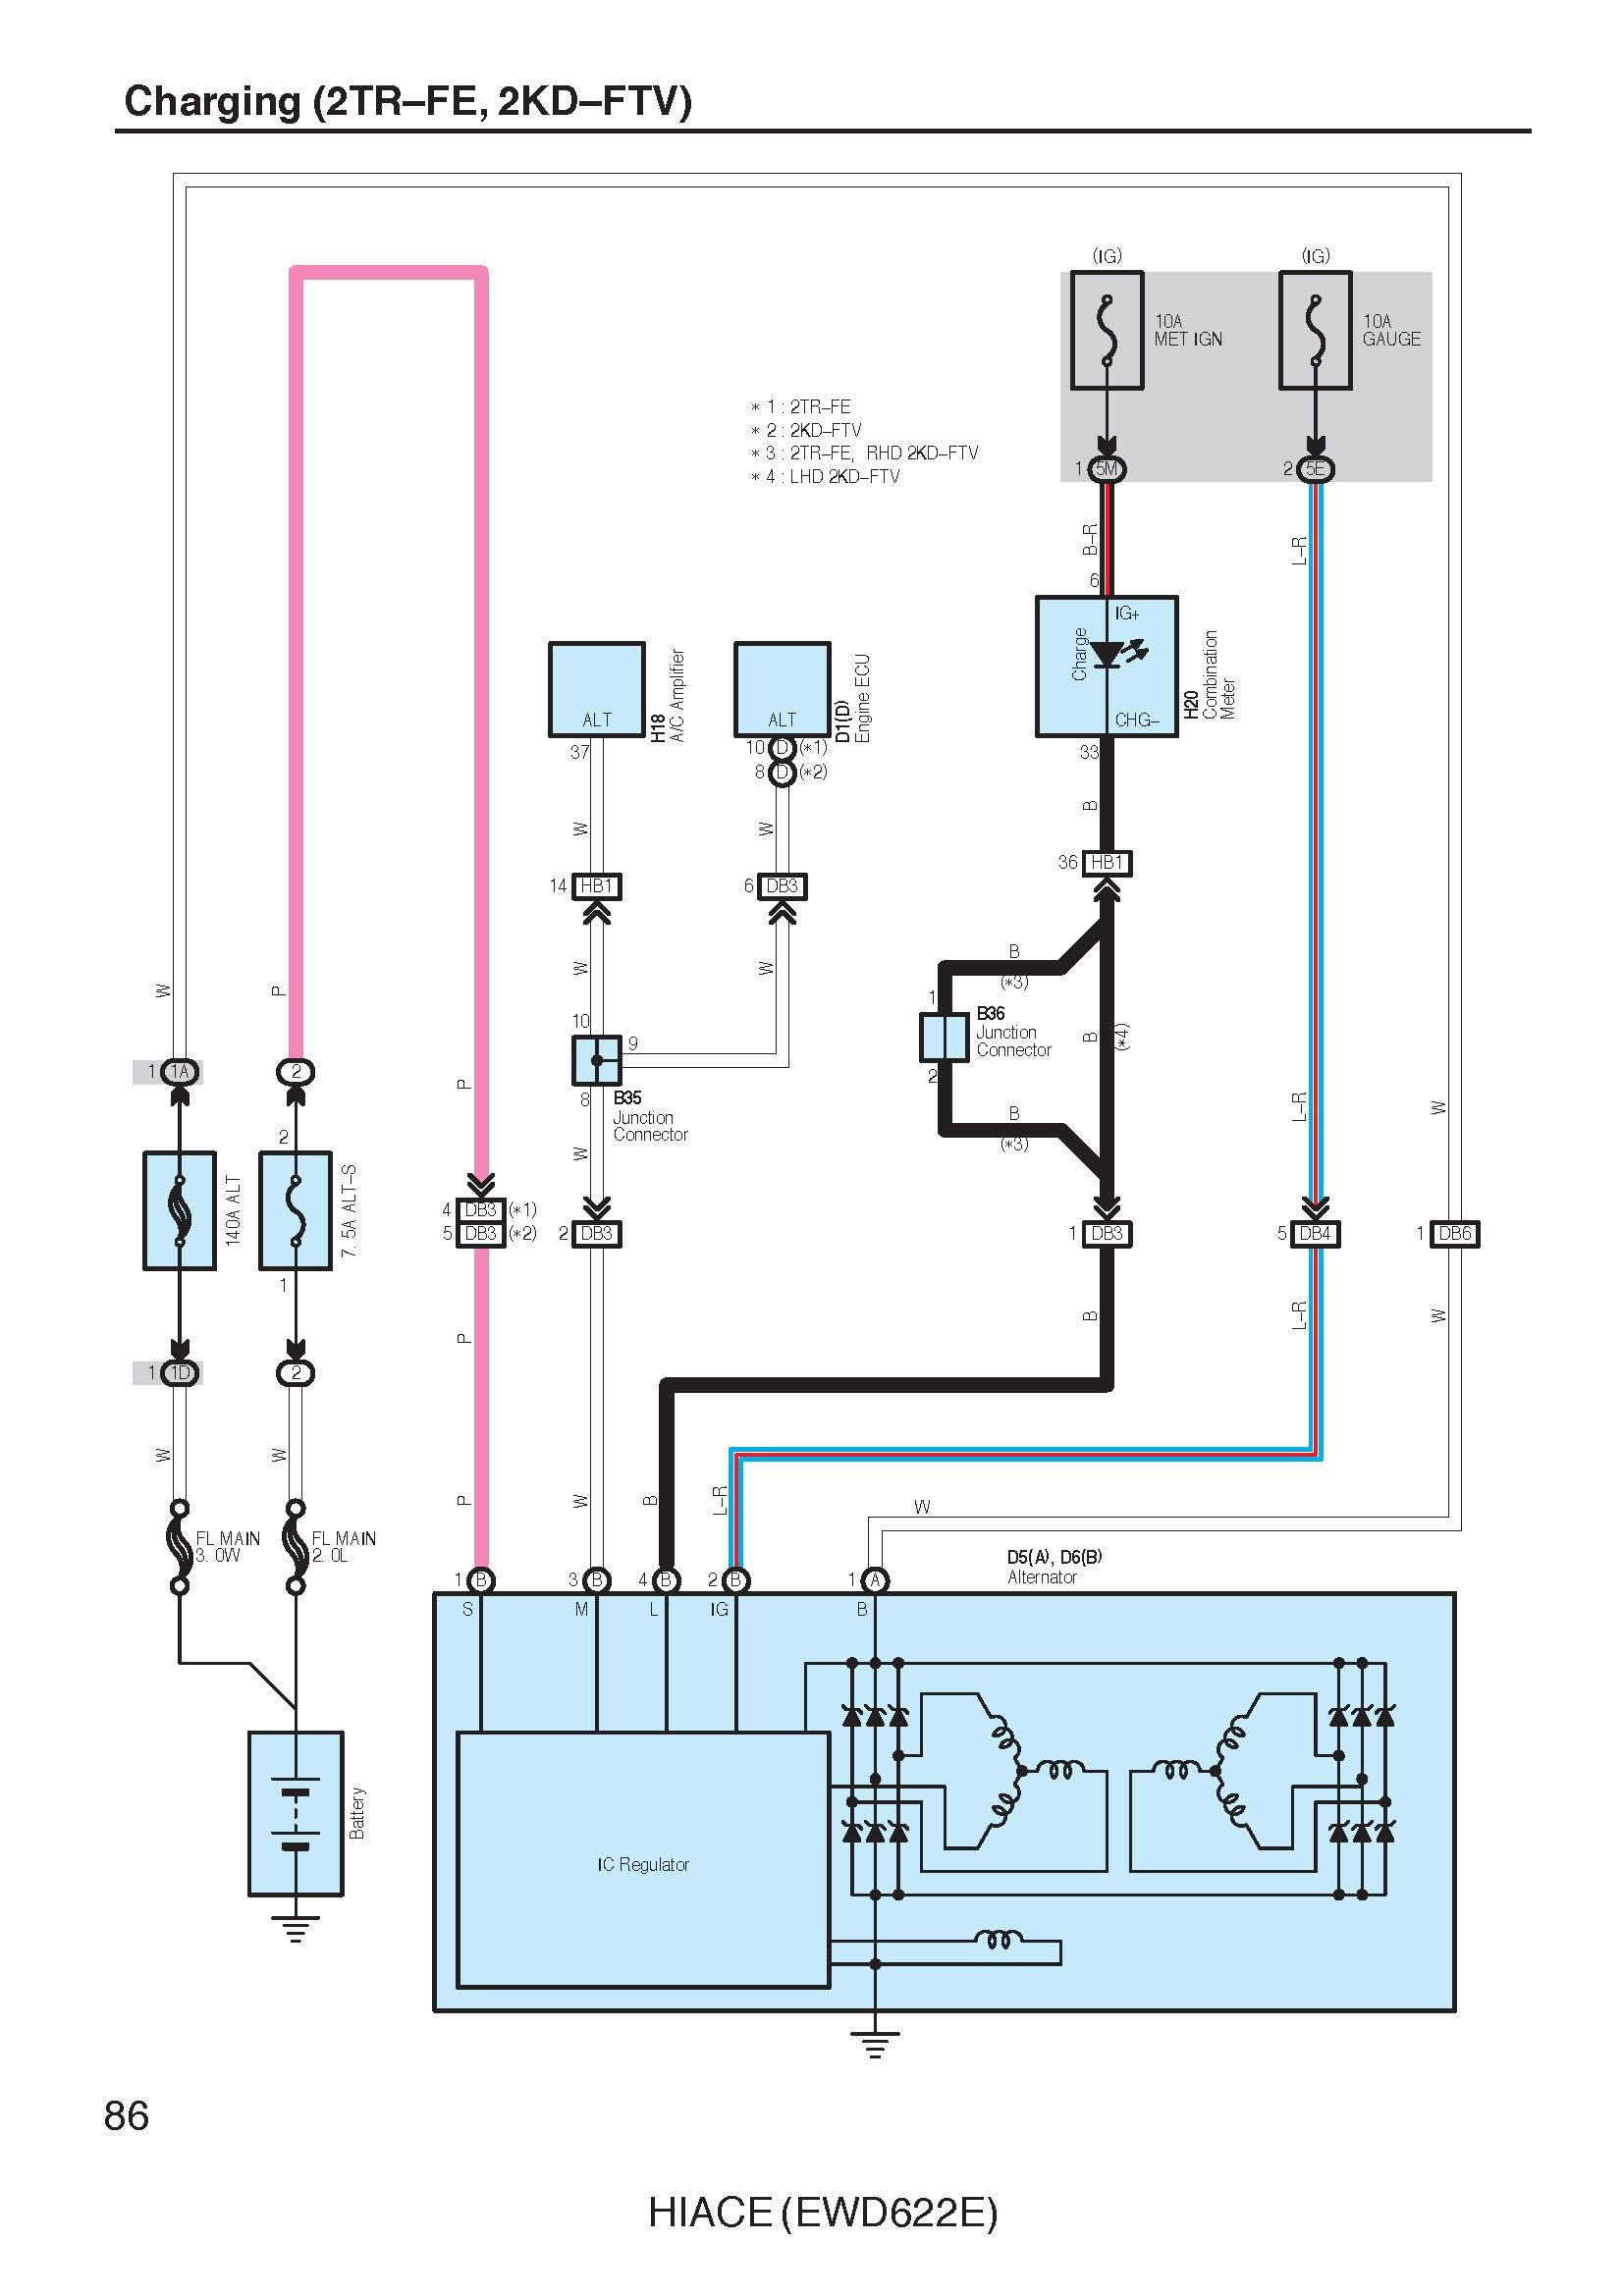 wiring diagram in pdf schematic diagram today rh 15 10 rassekaninchenzucht lange de